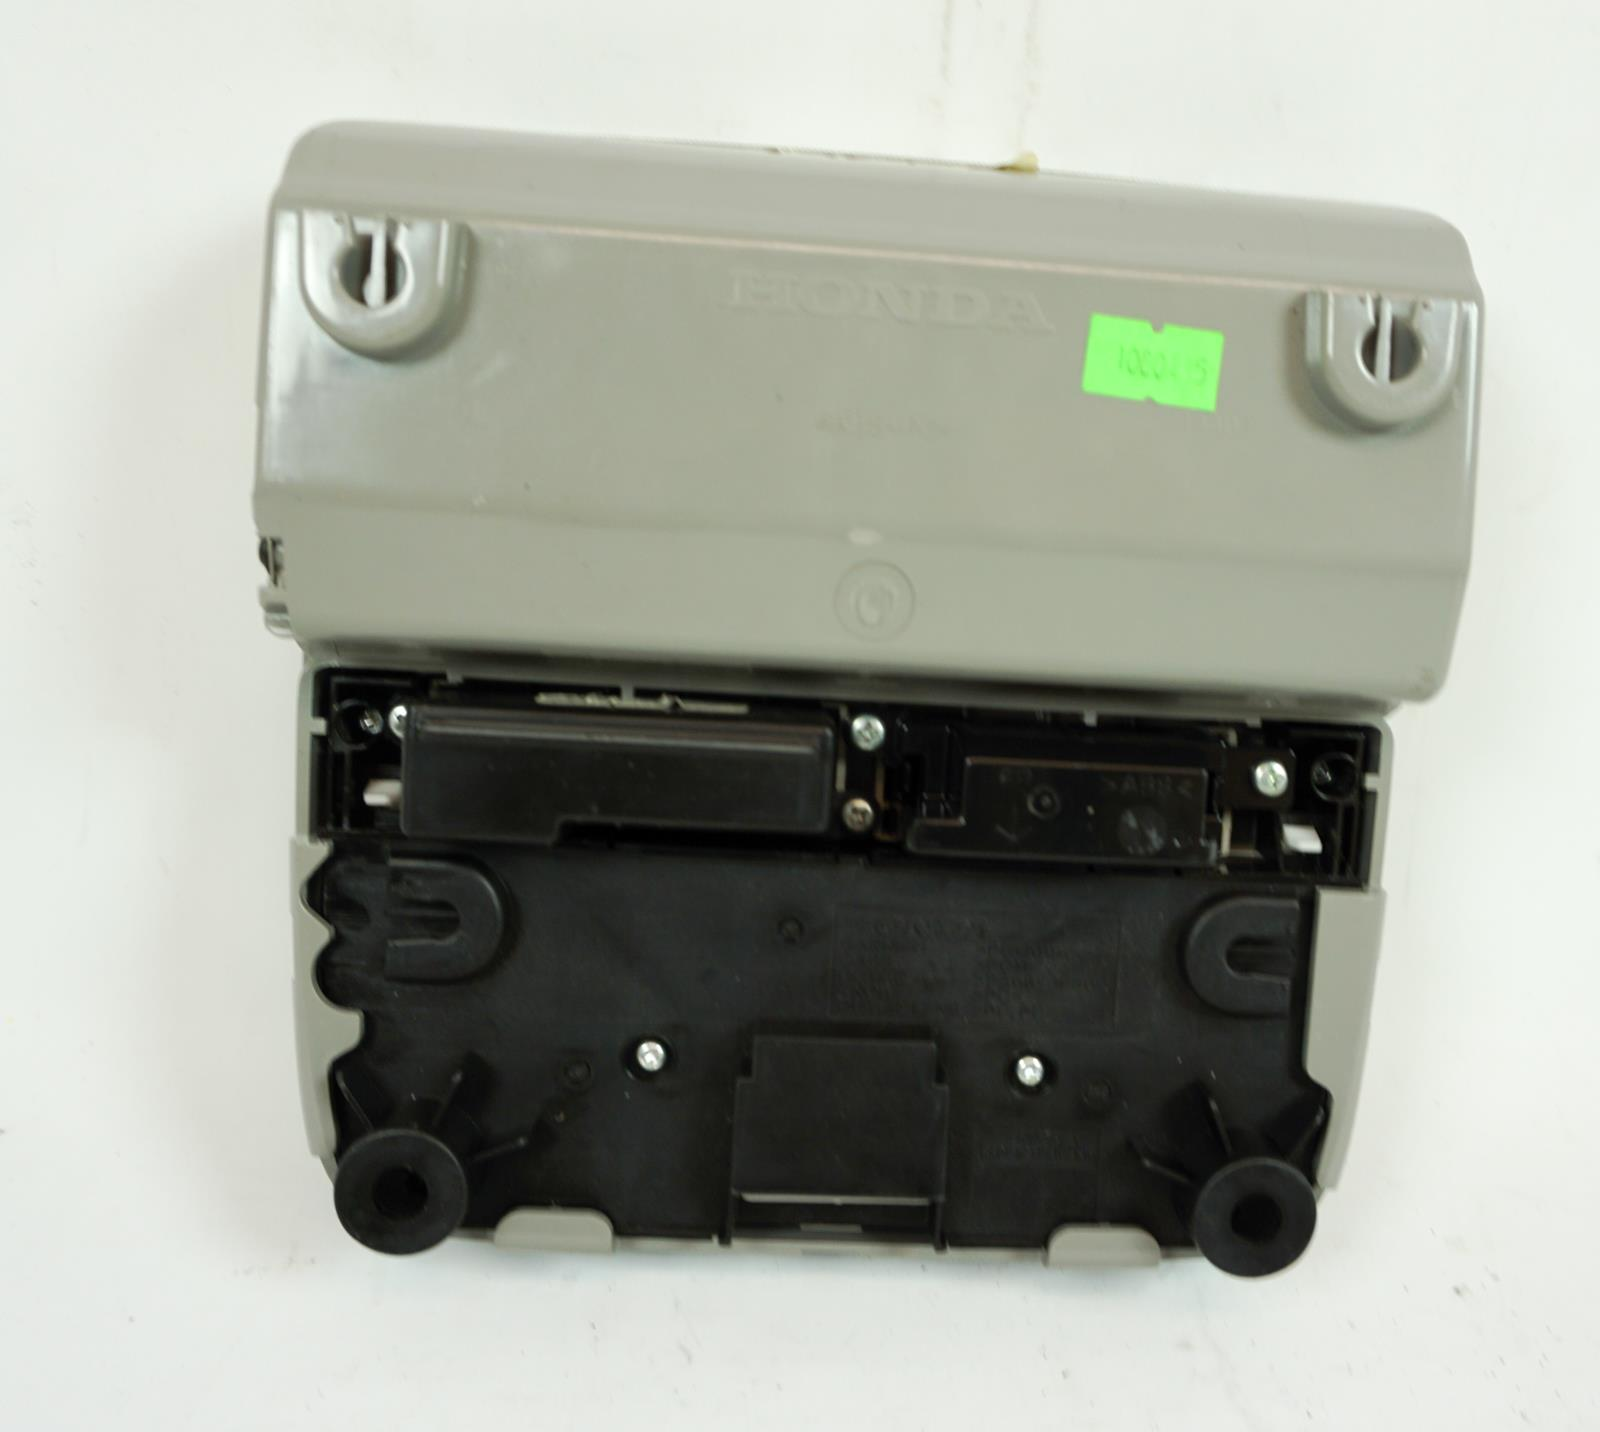 2015-2017 Acura TLX Overhead Console With Sunroof Switch